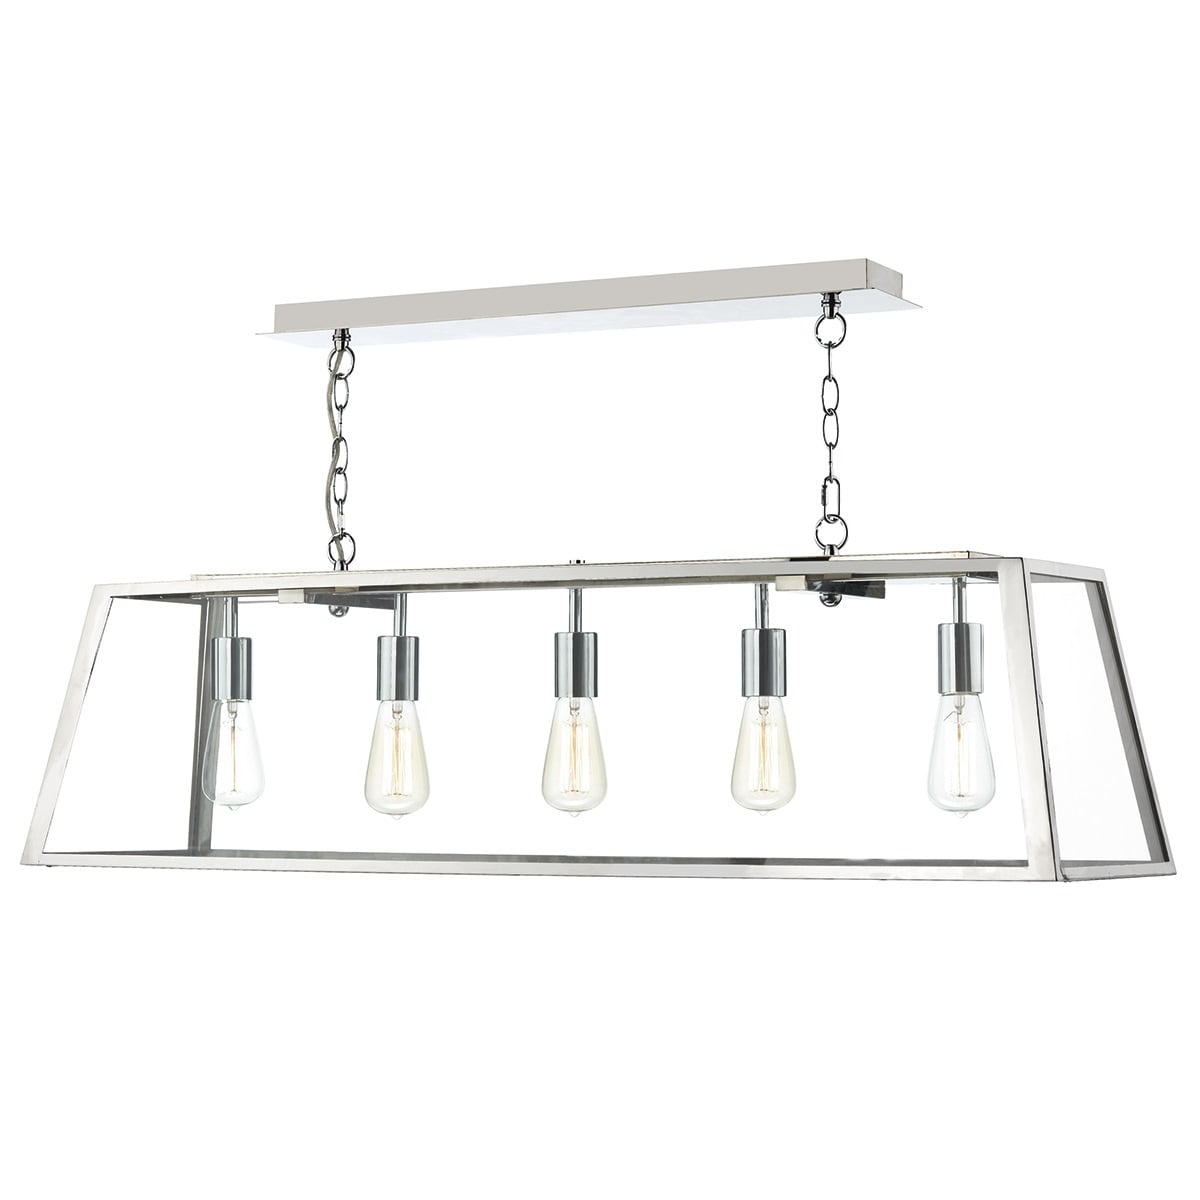 Dar ACA0544 Academy 5 Light Box Pendant in Stainless Steel